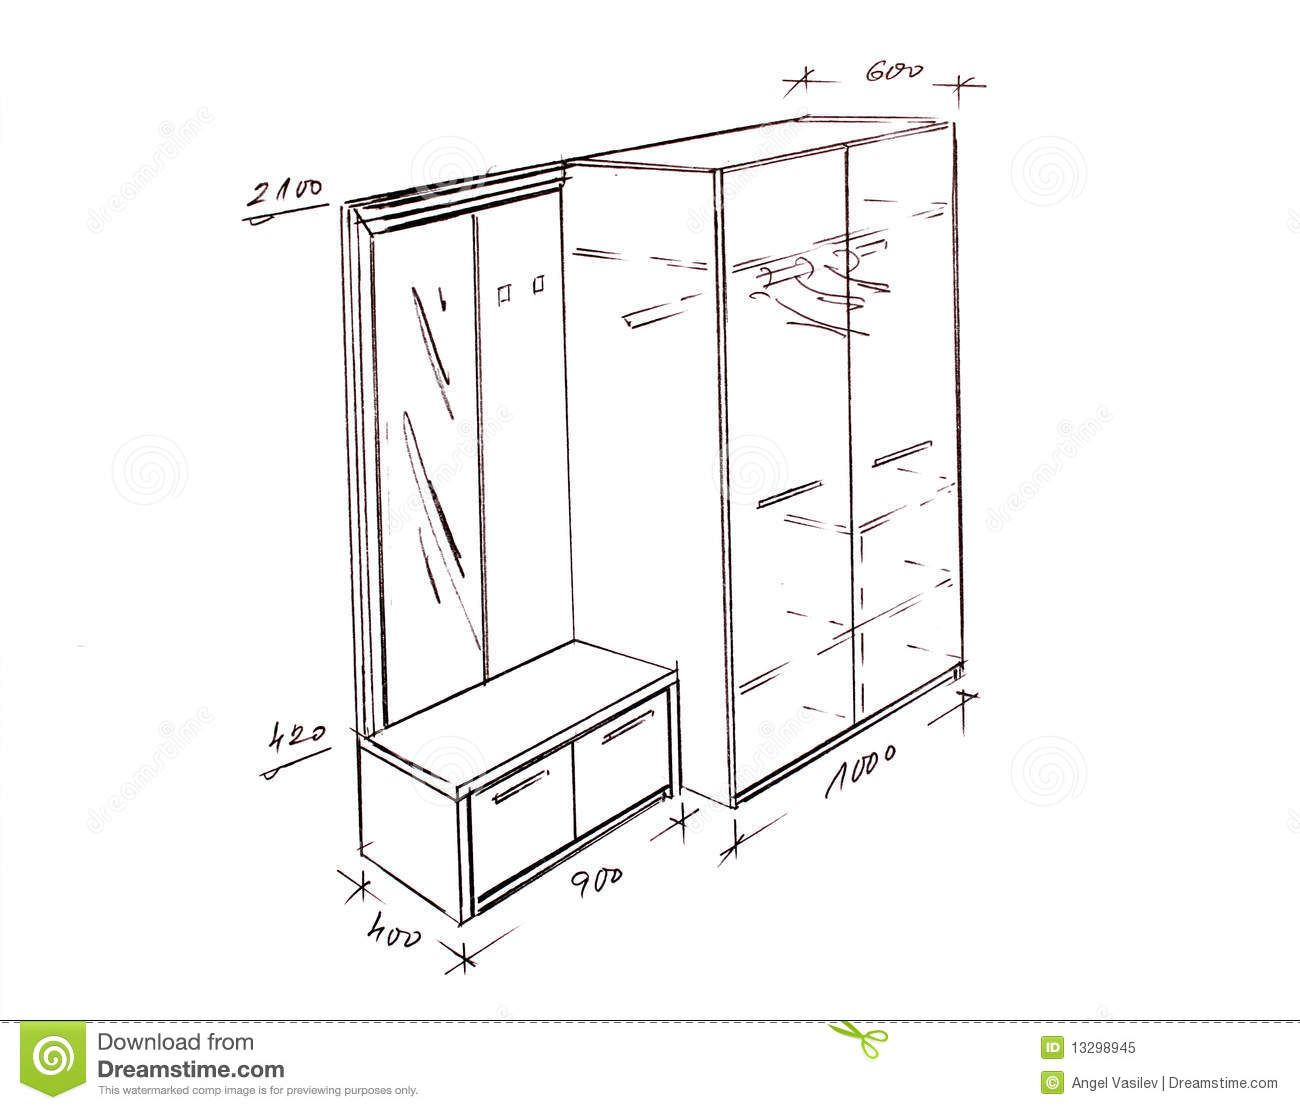 Furniture Design Drawings Furniture Design Drawings